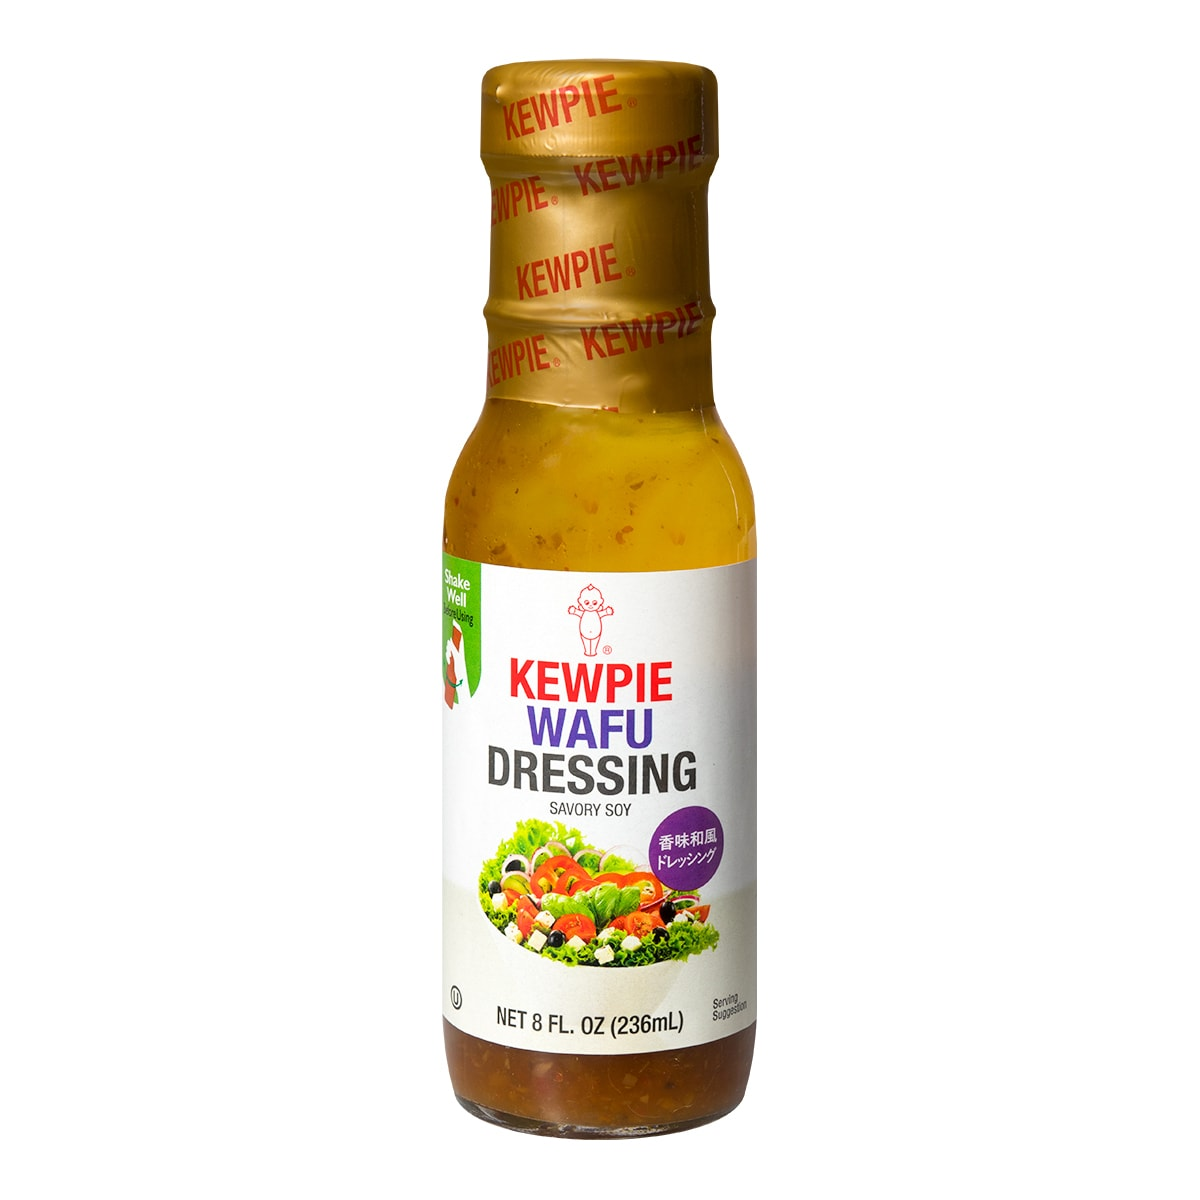 KEWPIE Wafu Dressing 236ml